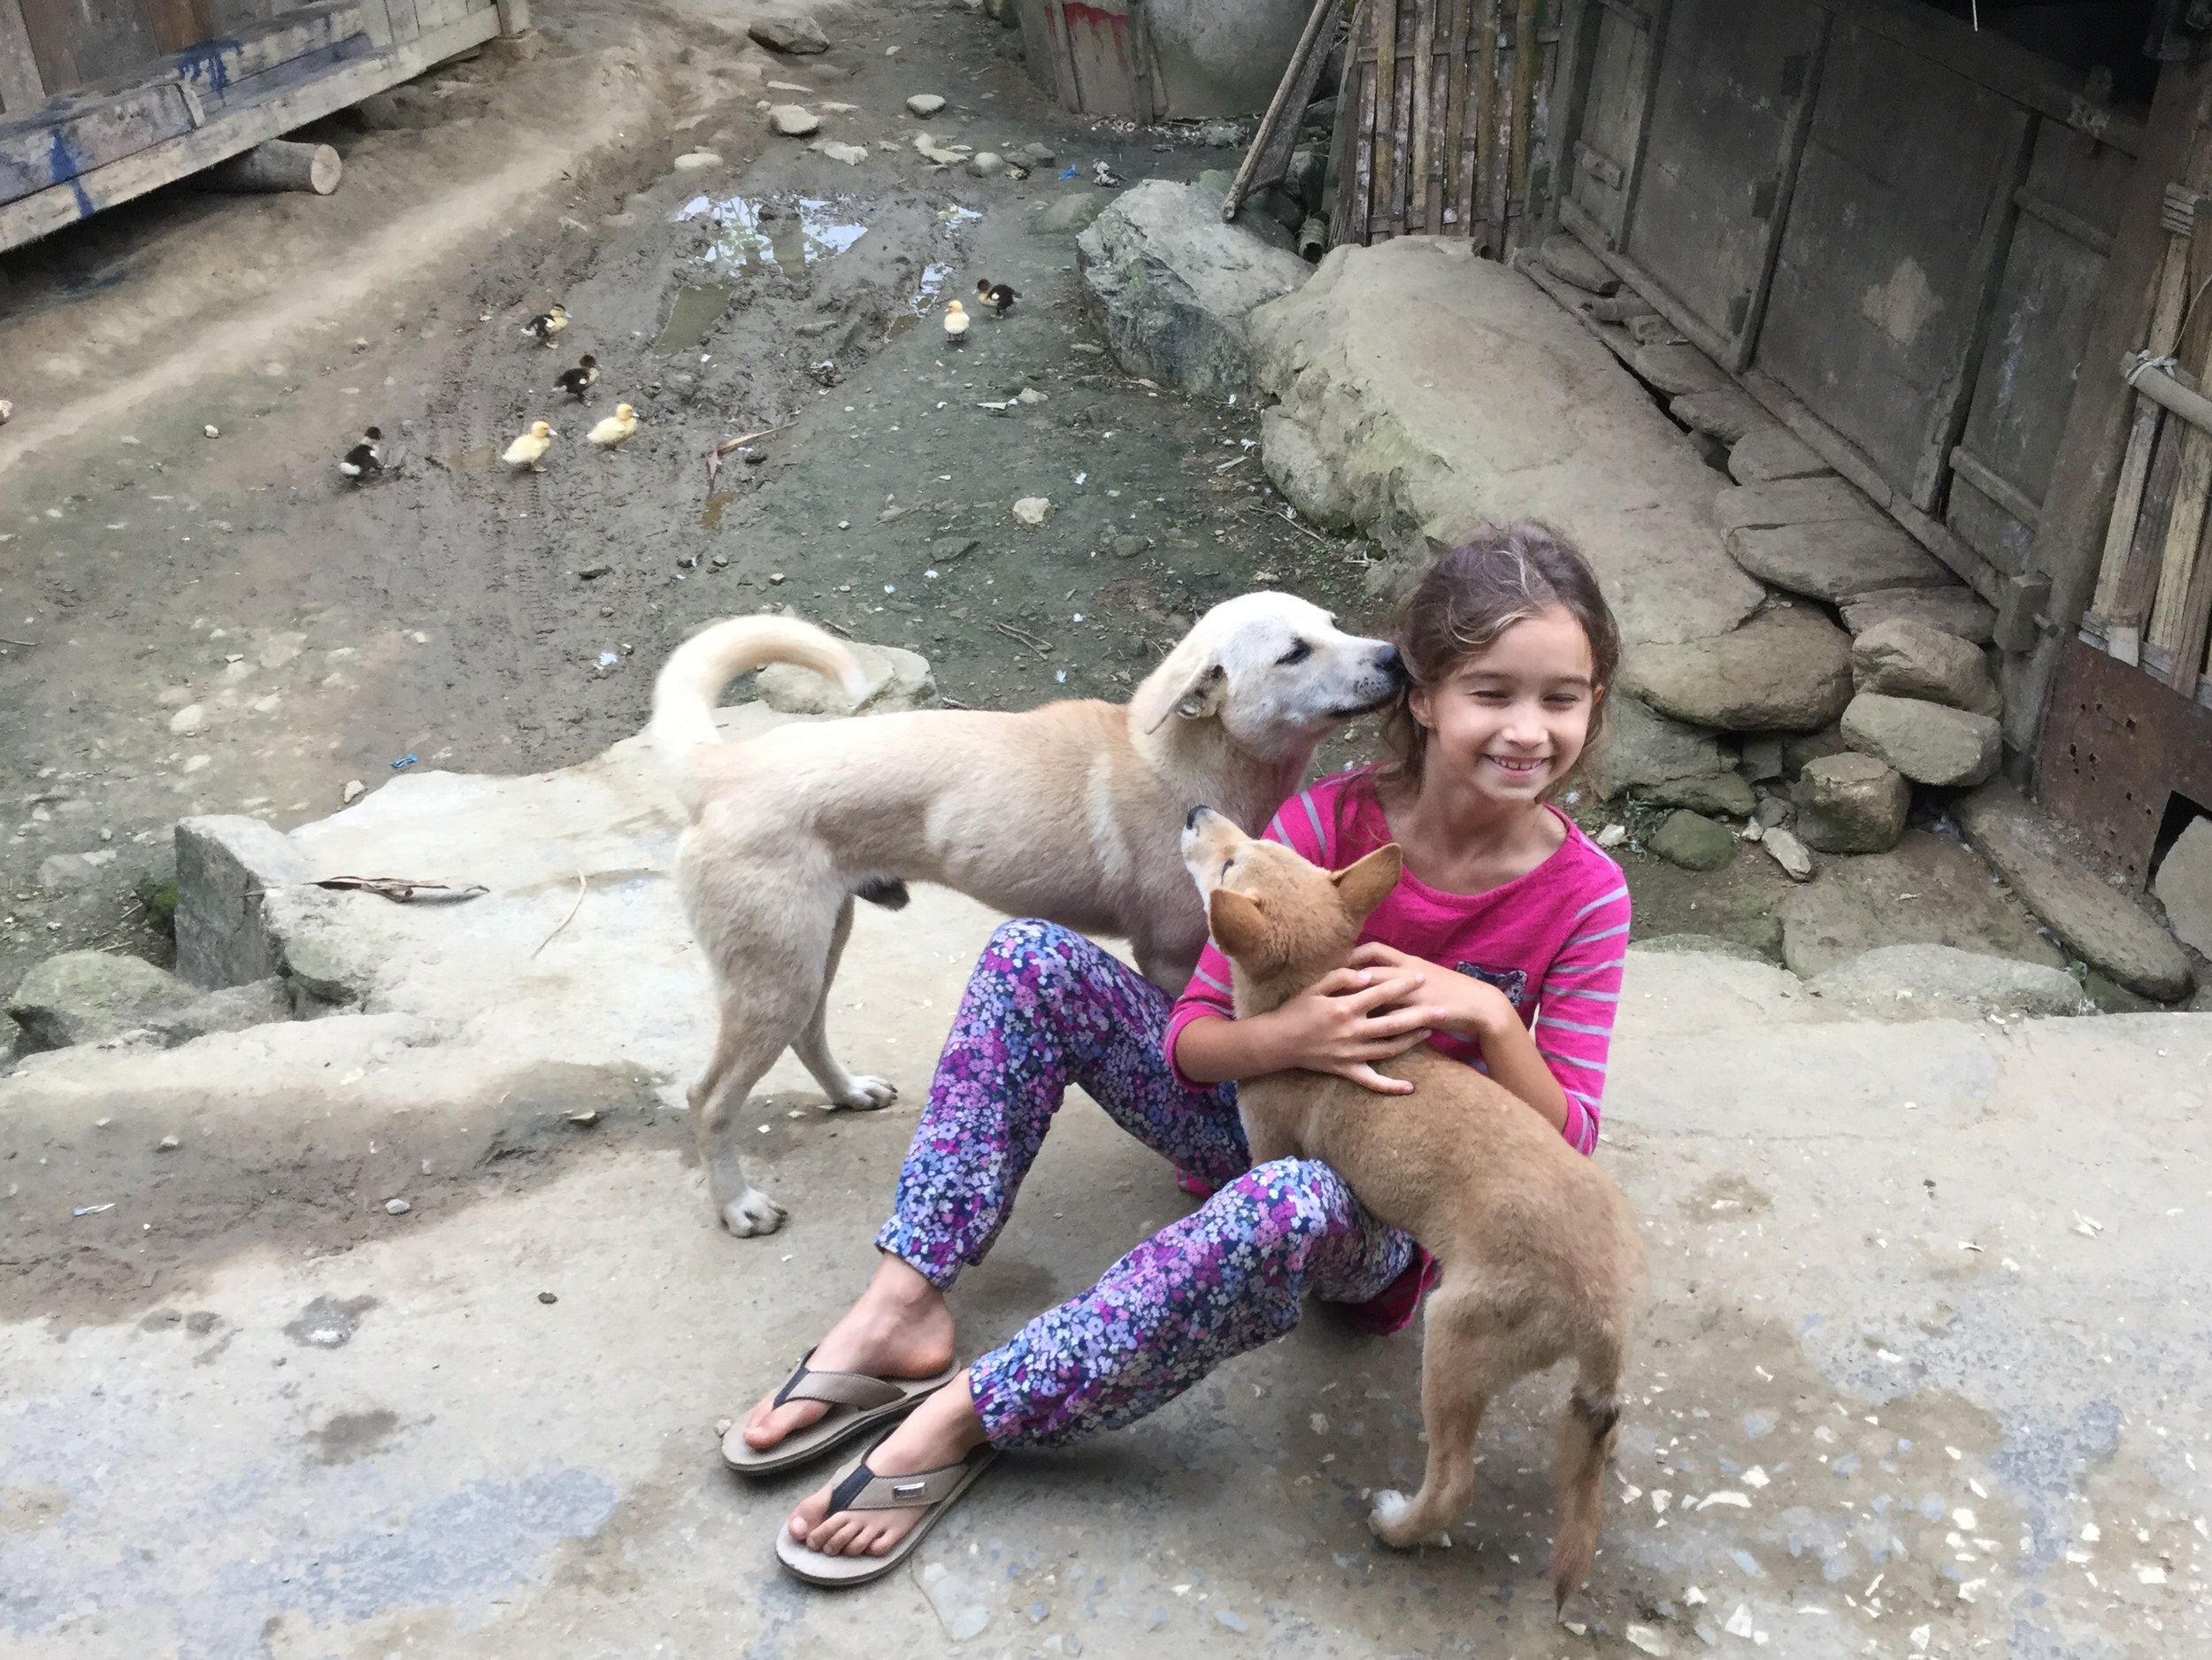 Hugs and kisses from two of the compound dogs.